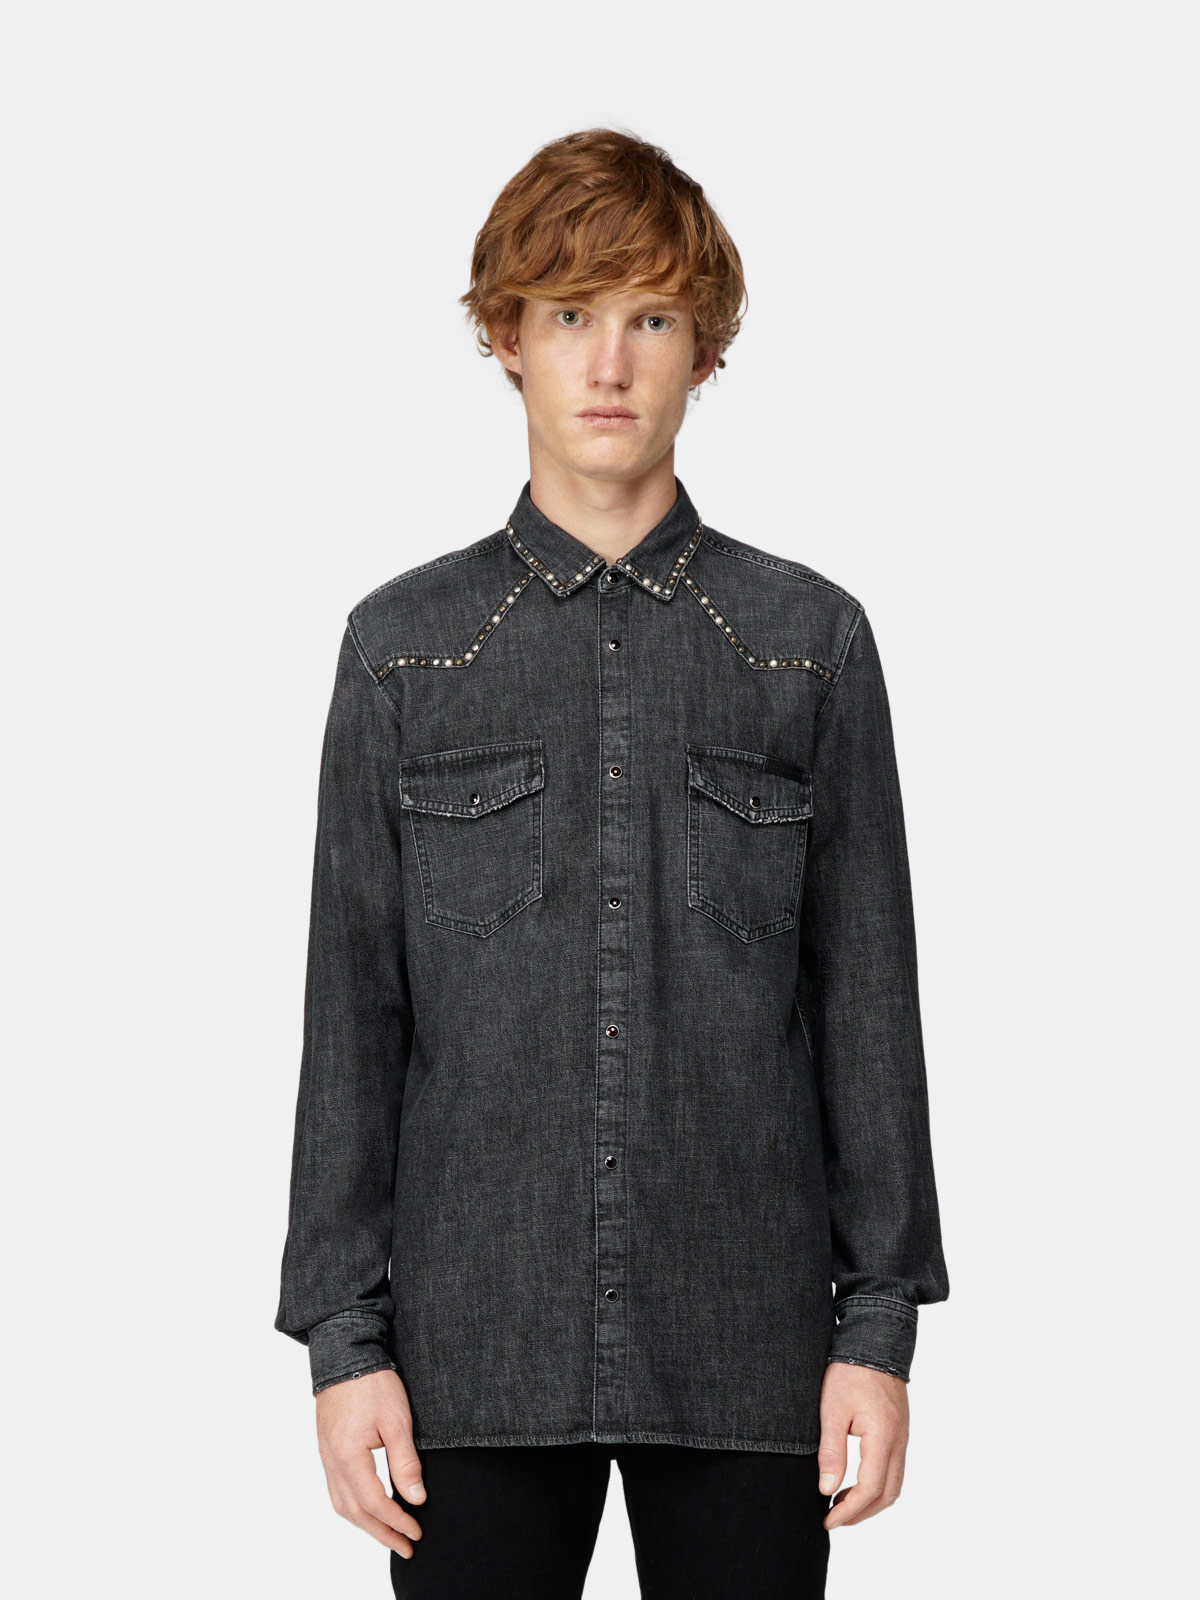 Golden Goose - Axel shirt in dark-wash denim with studs in